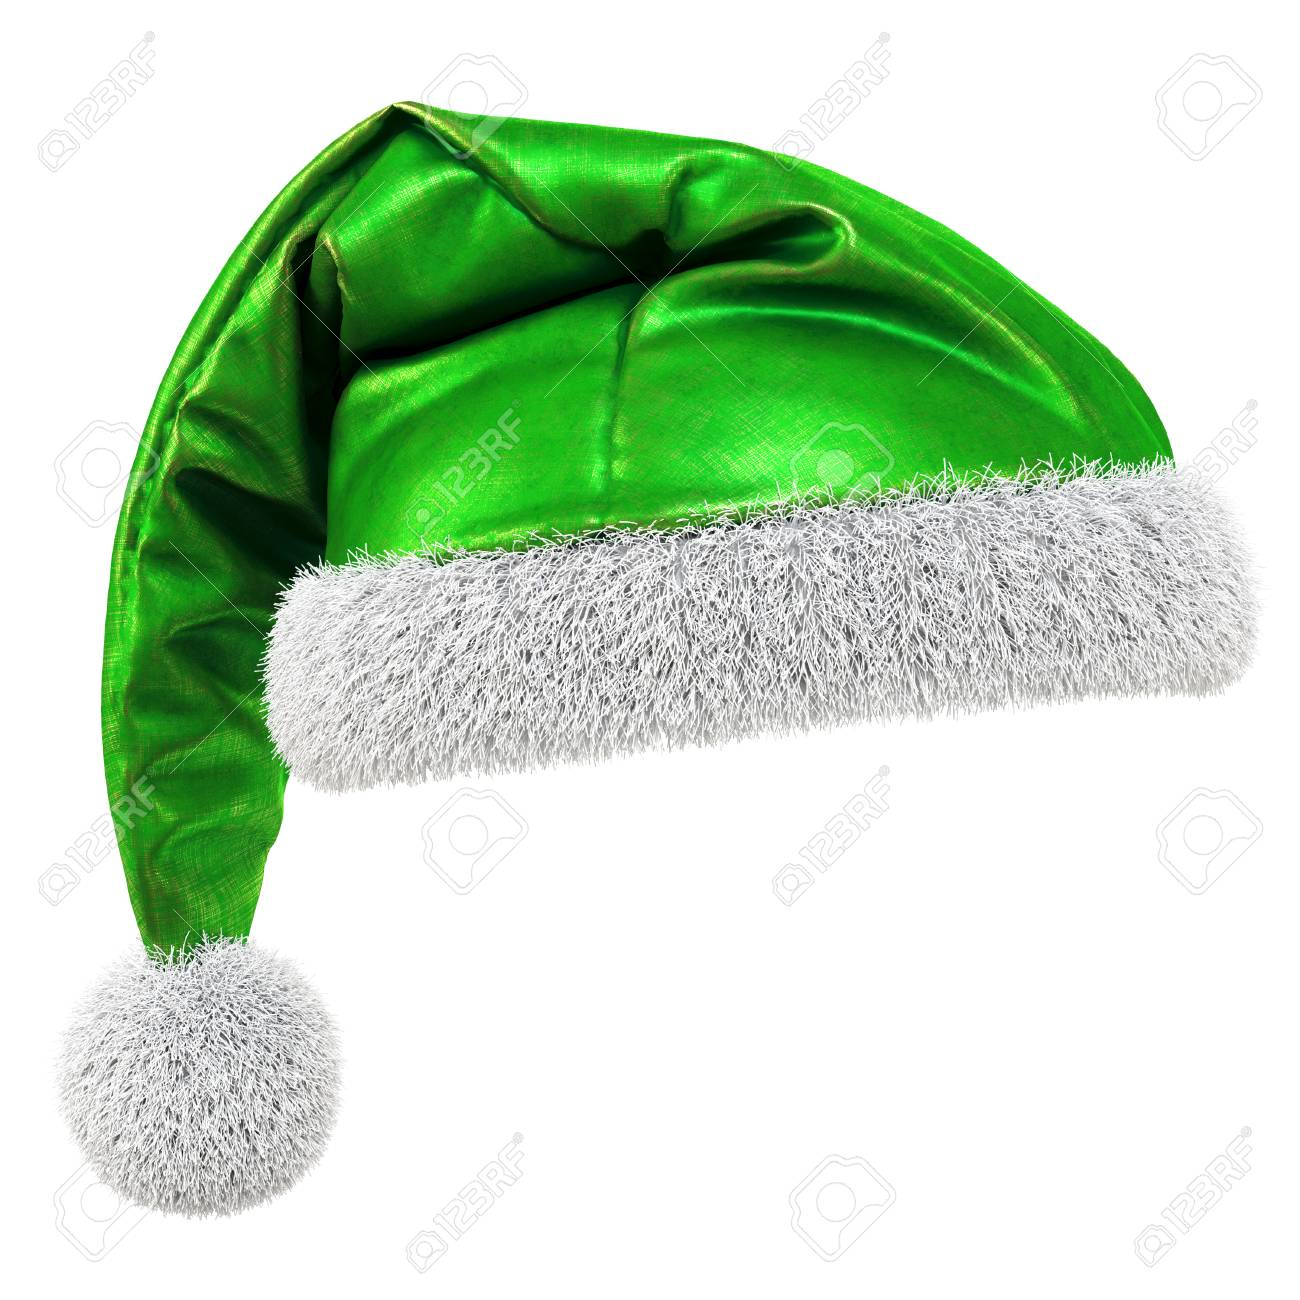 80316af32e768 Santa Claus green hat isolated on white background. 3D illustration. Stock  Illustration - 65432957